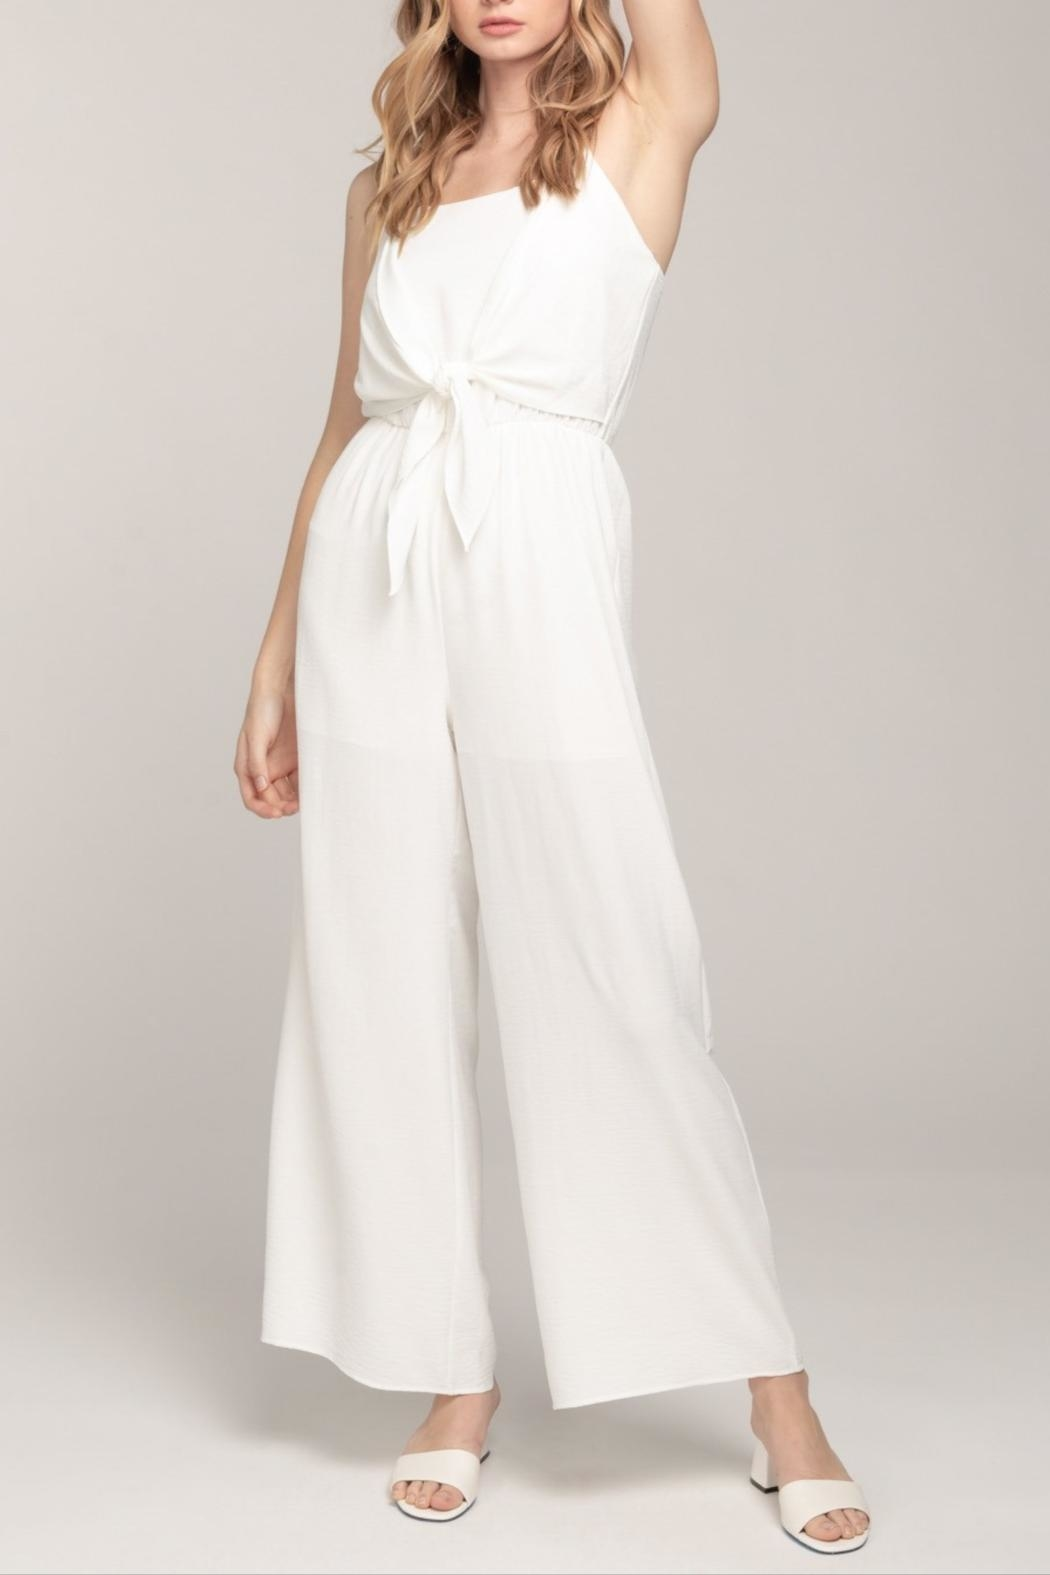 Everly Cami Tie-Front Jumpsuit - Side Cropped Image